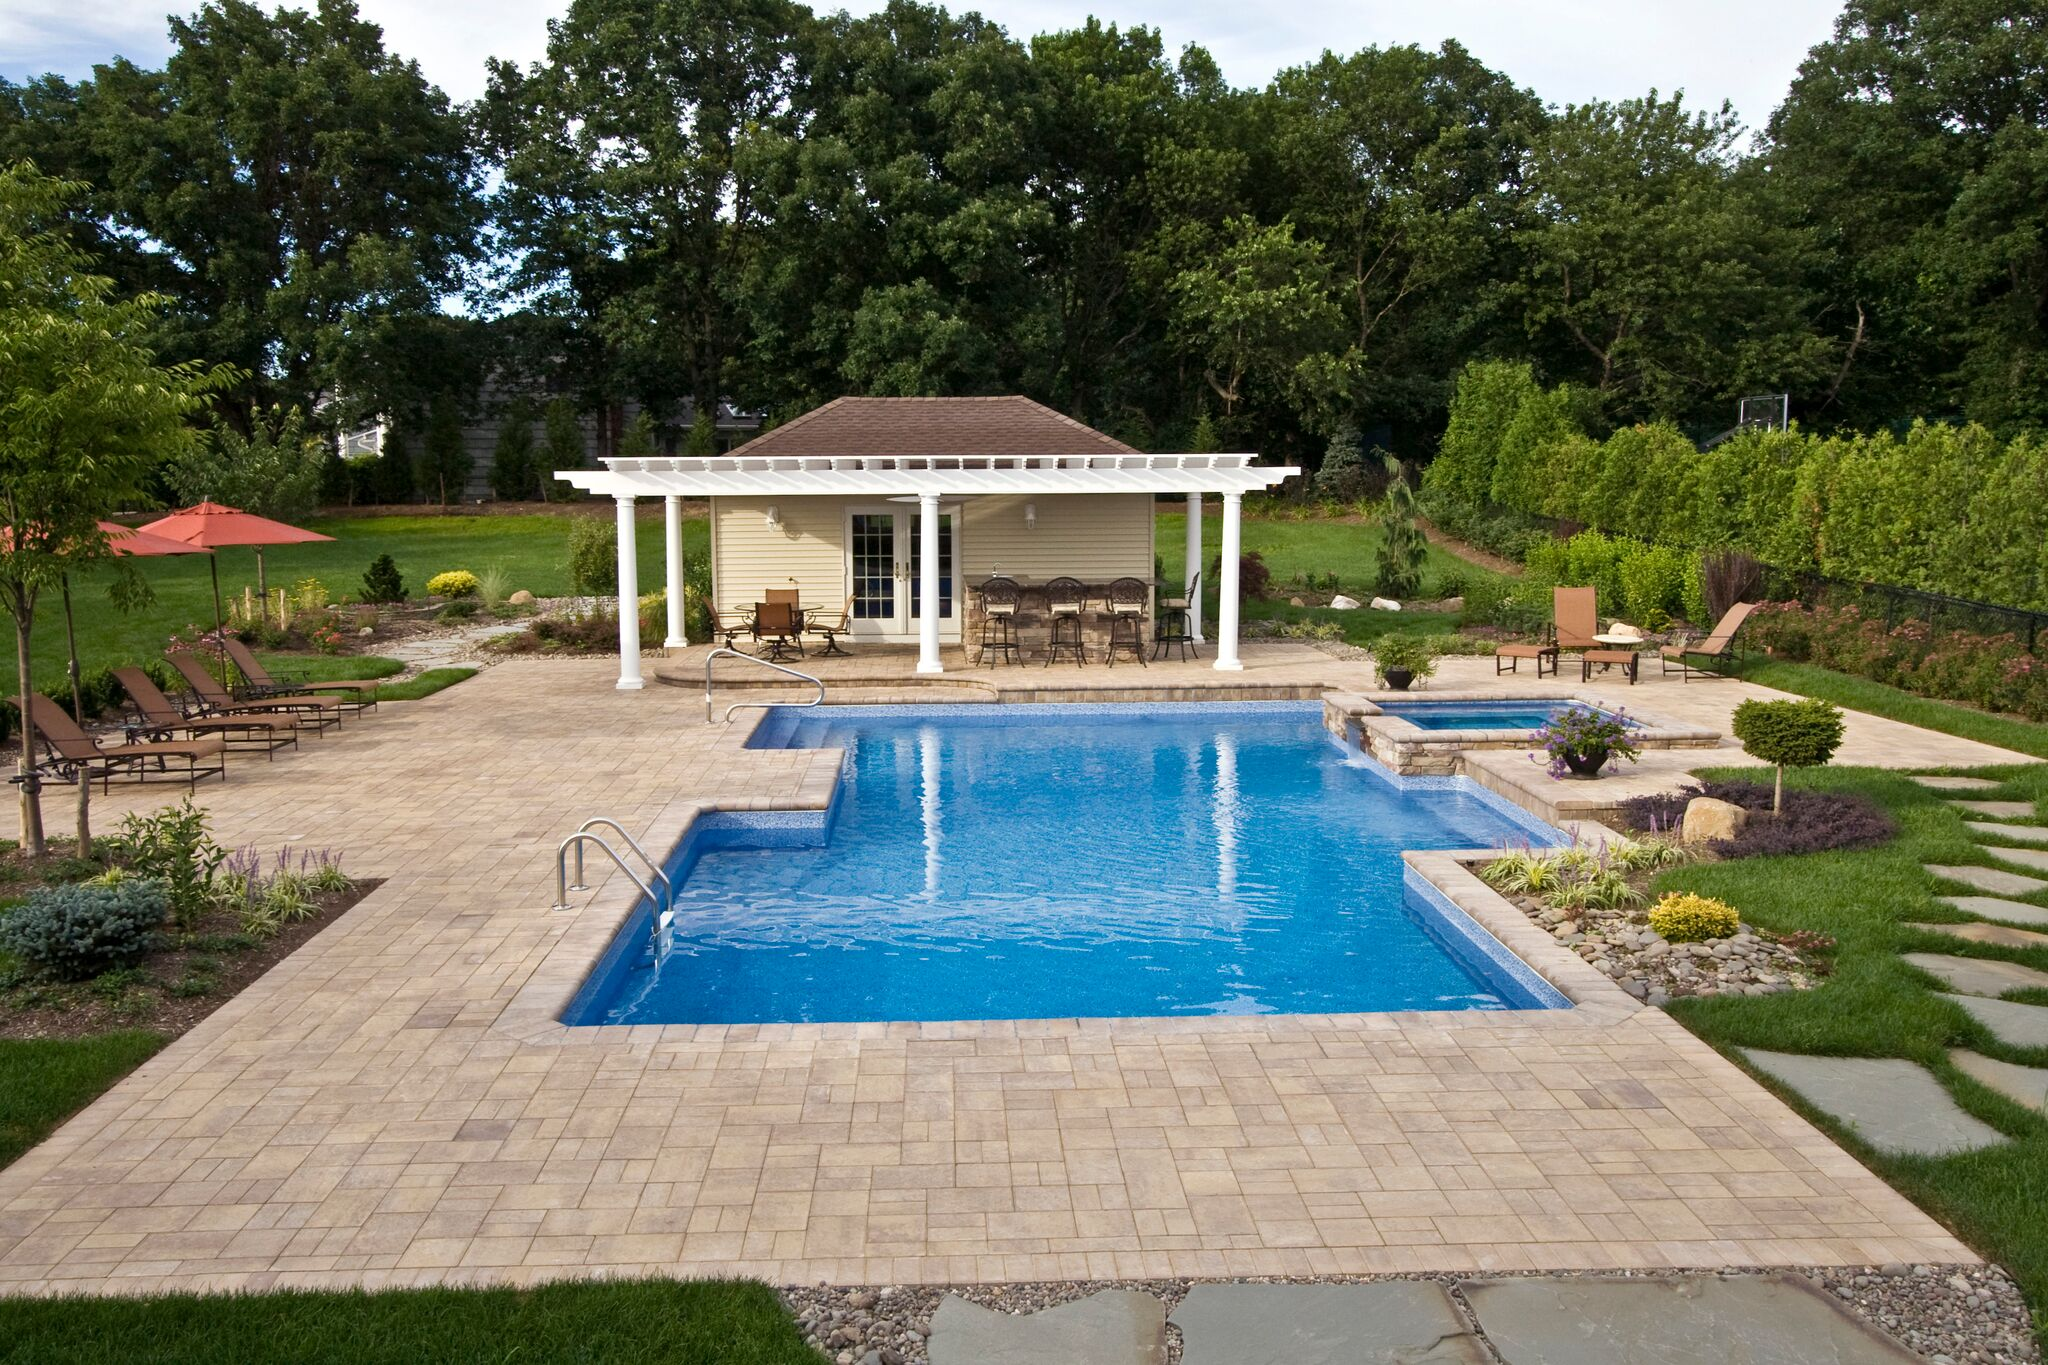 Backyard Retreat (Long Island/NY):